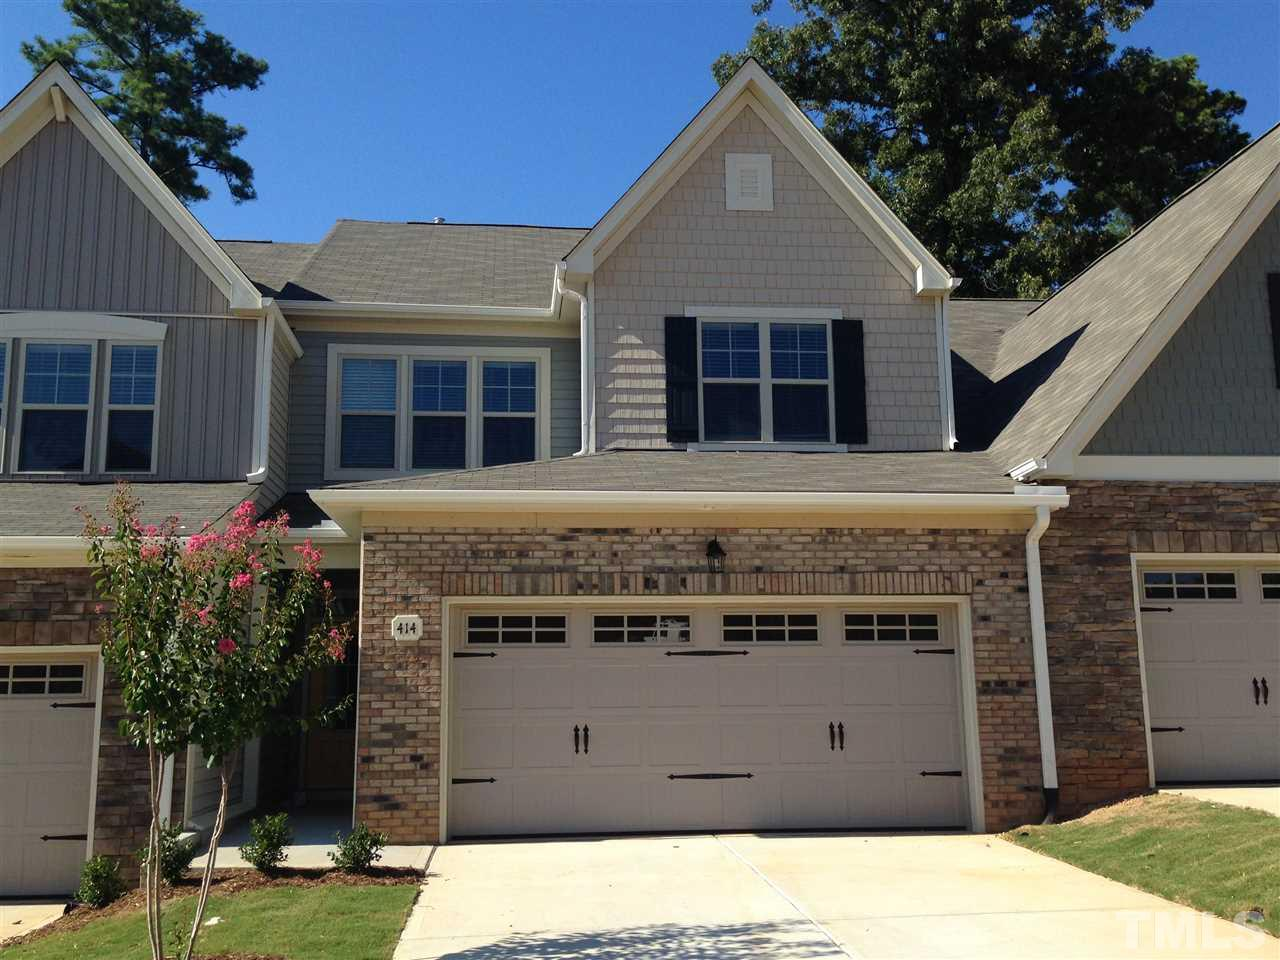 414 Piazza Way, Wake Forest, NC 27587